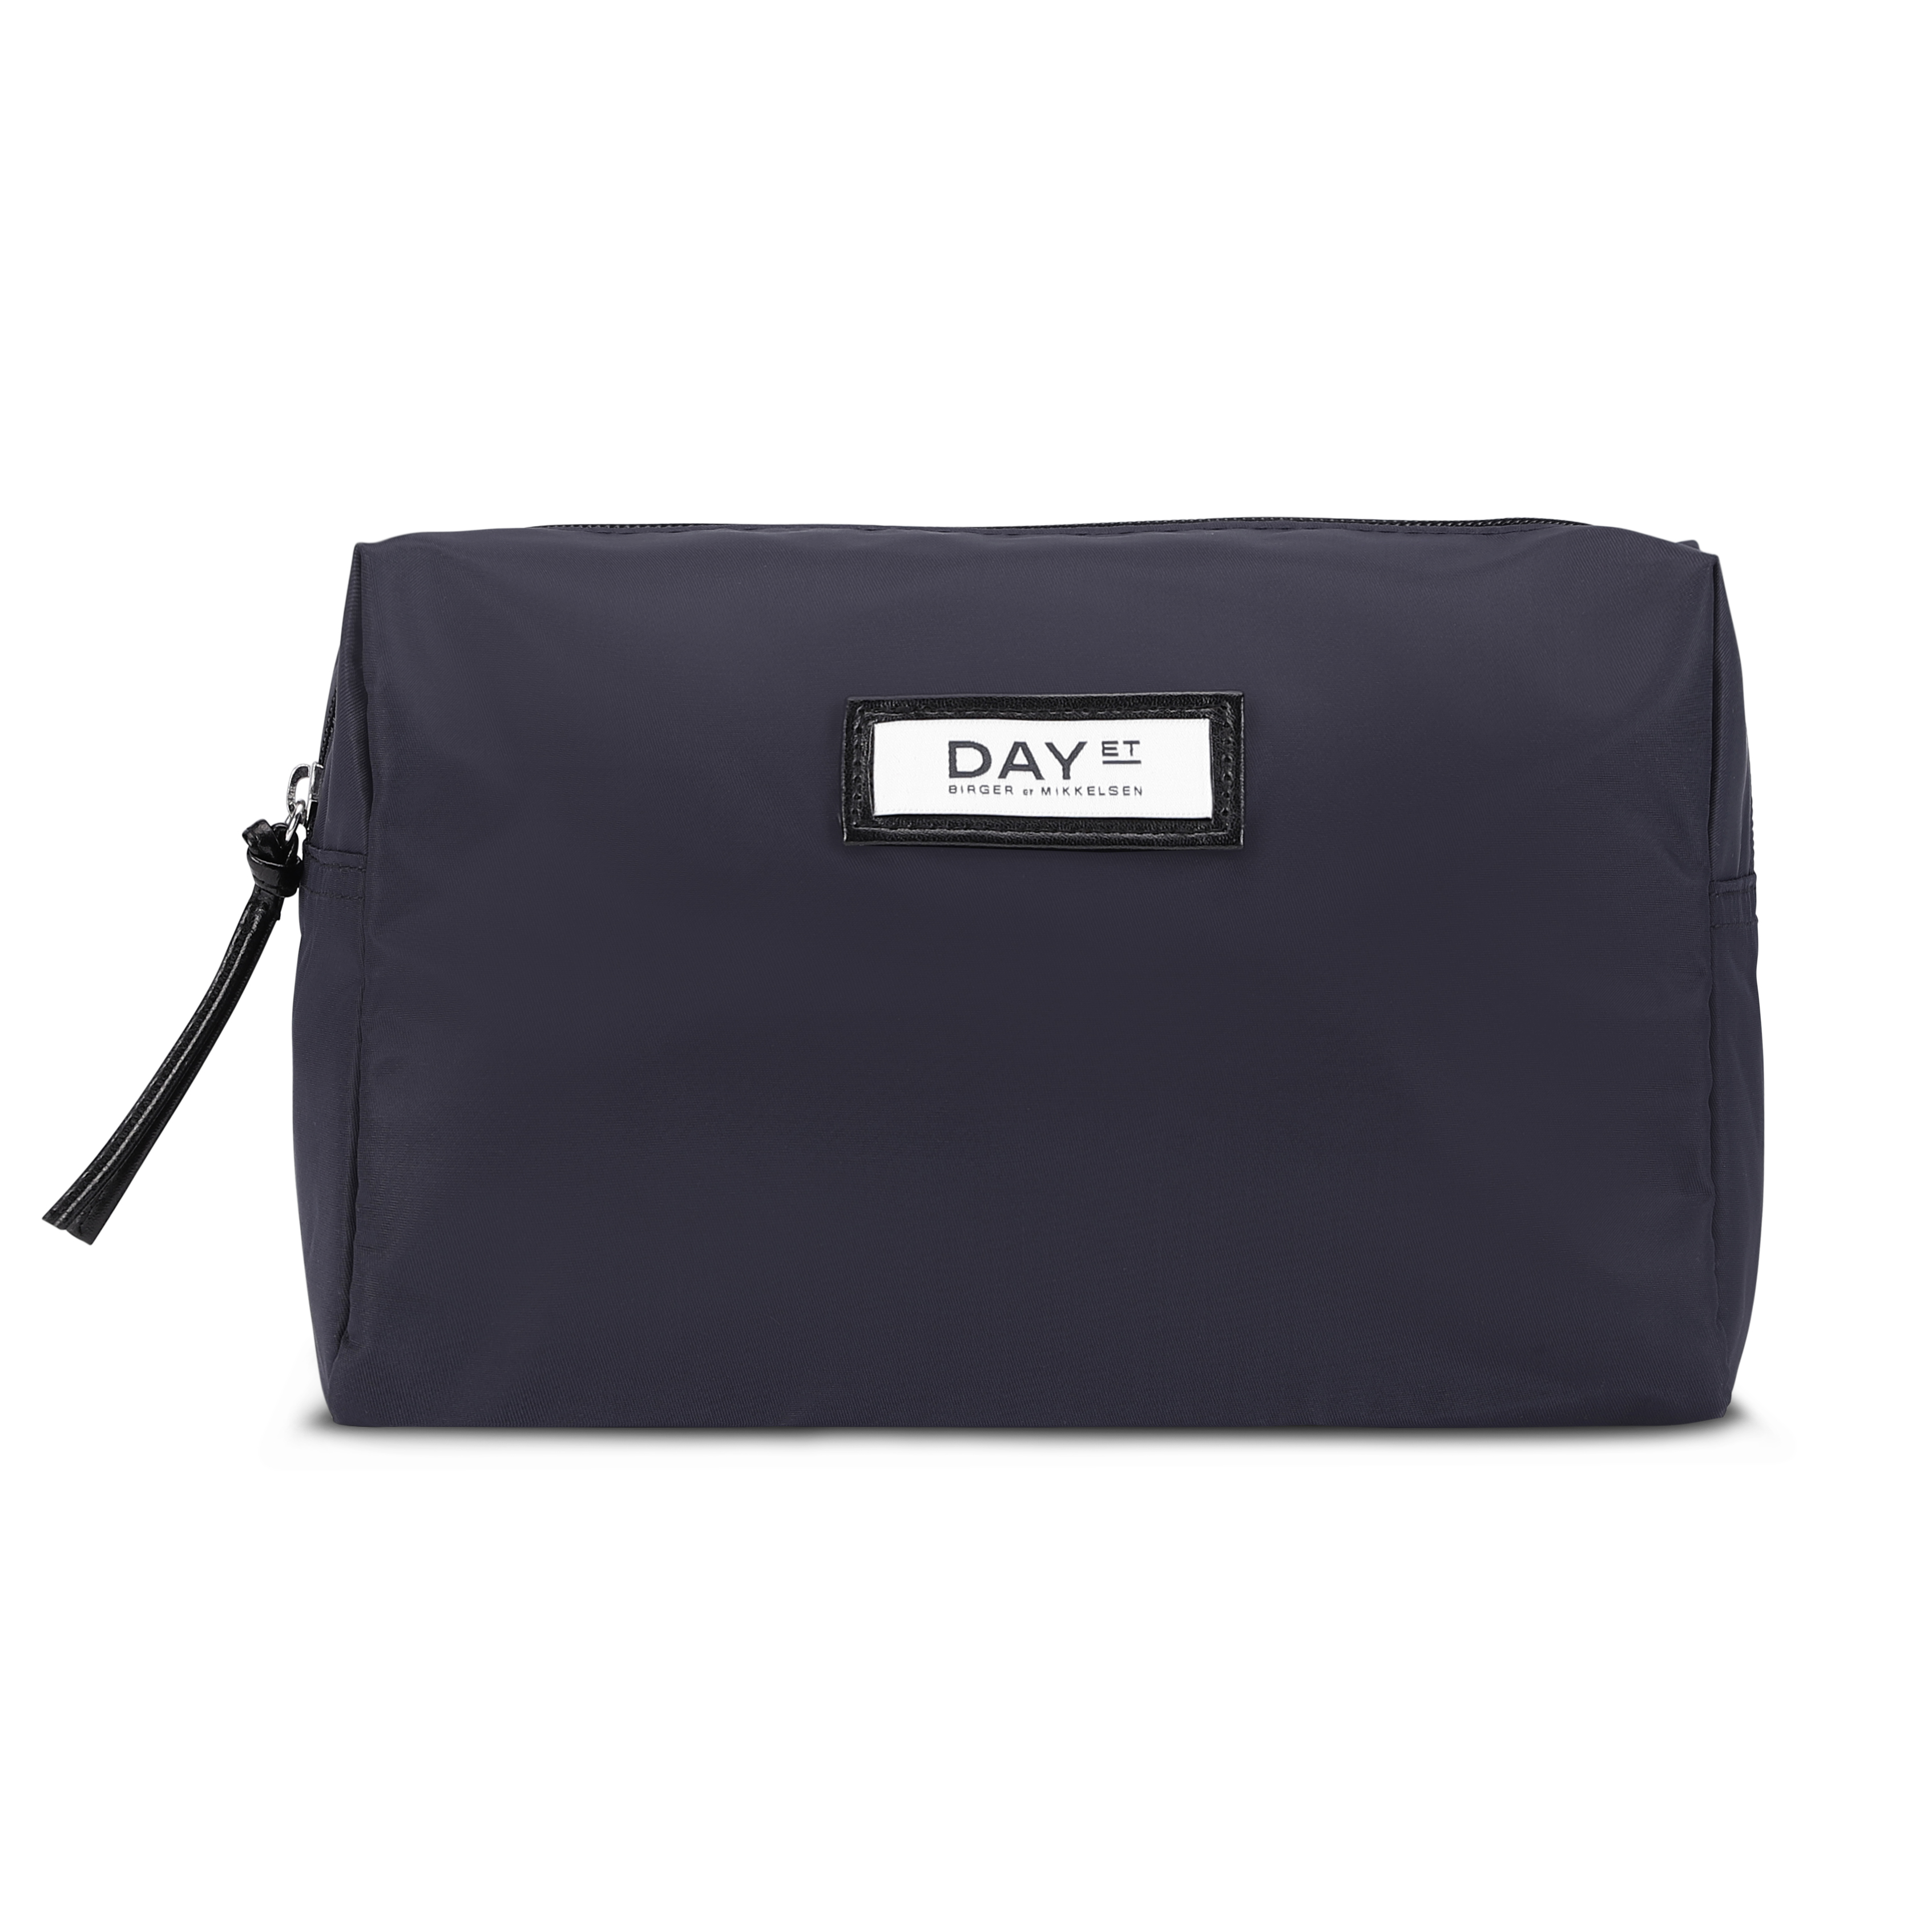 DAY ET Gweneth beauty, navy